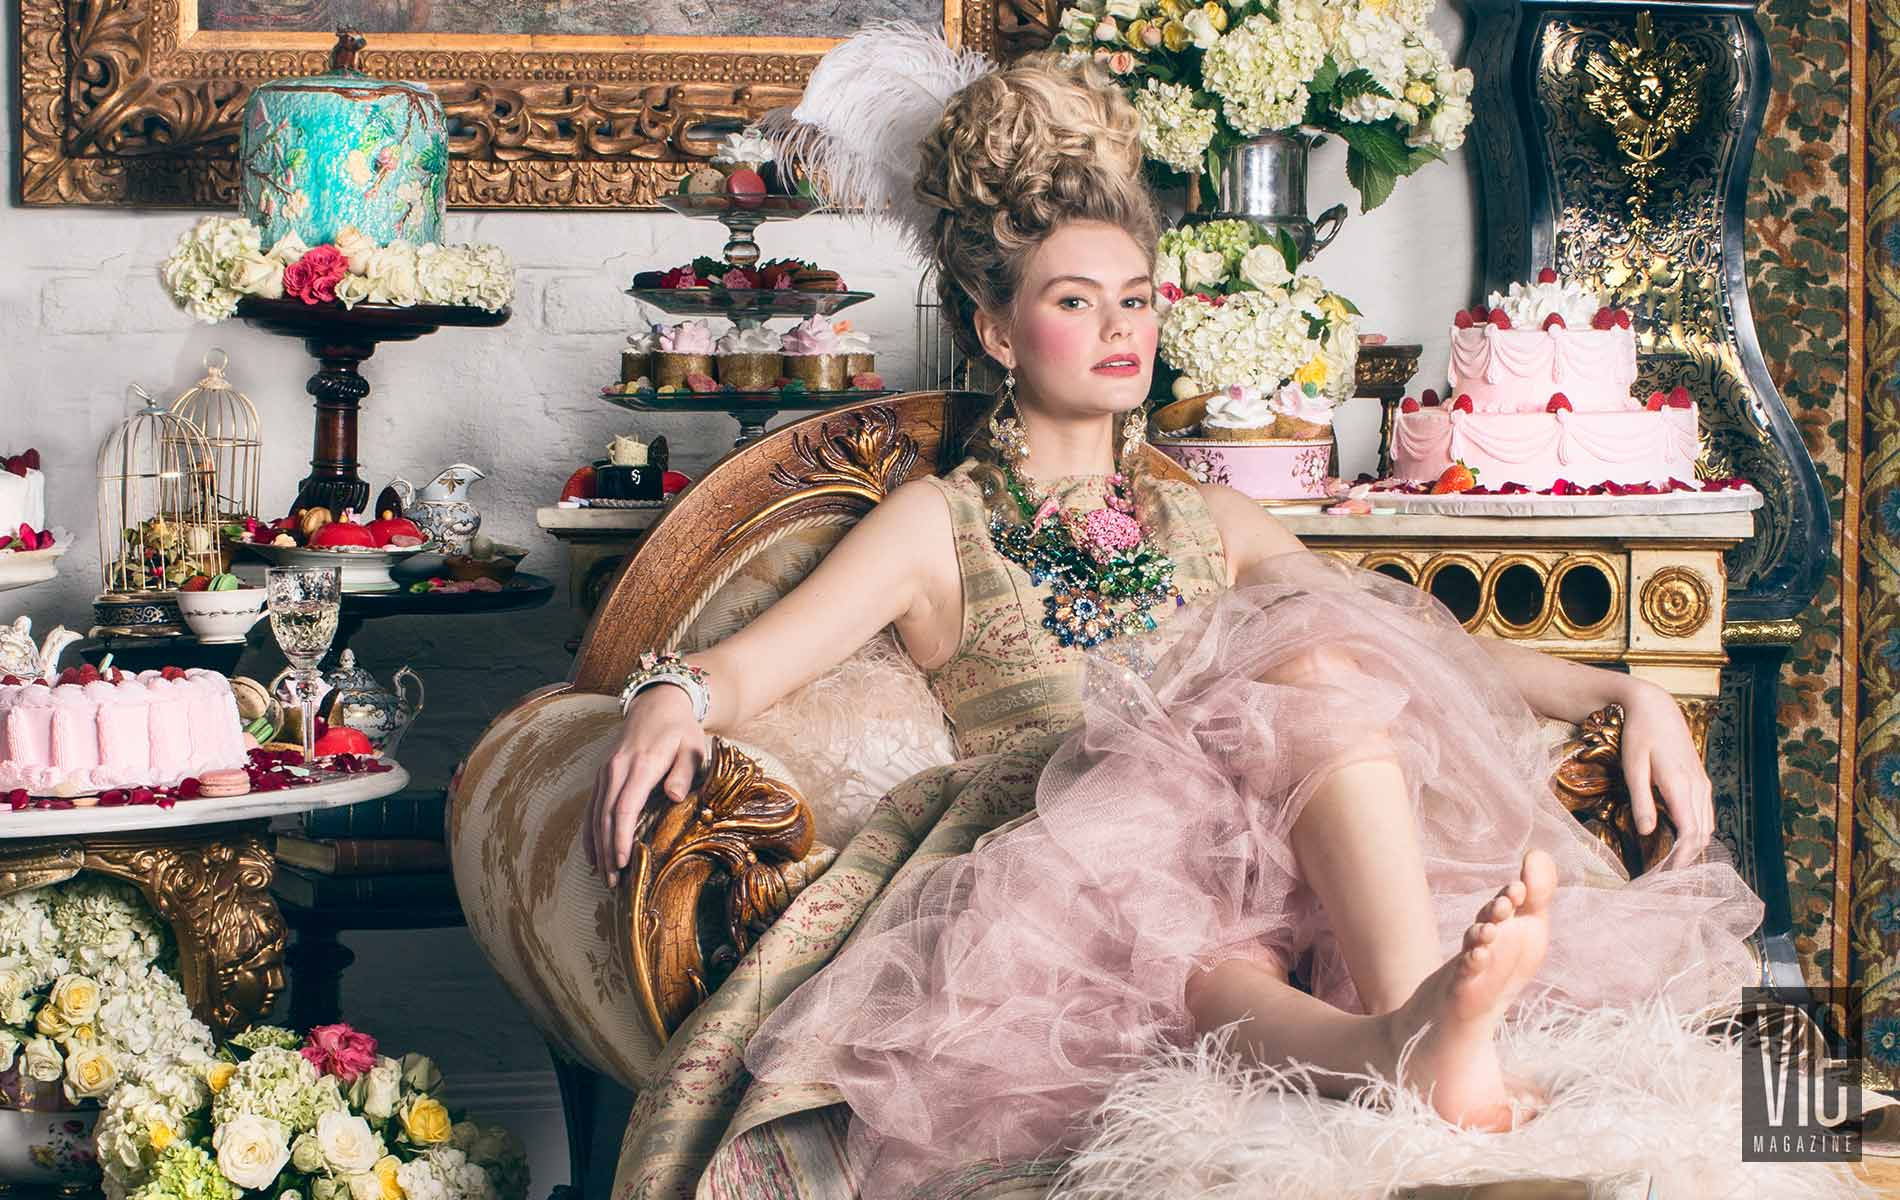 2015 South Walton Fashion Week Winner Miranda Abney in Marie Antoinette Photo Shoot